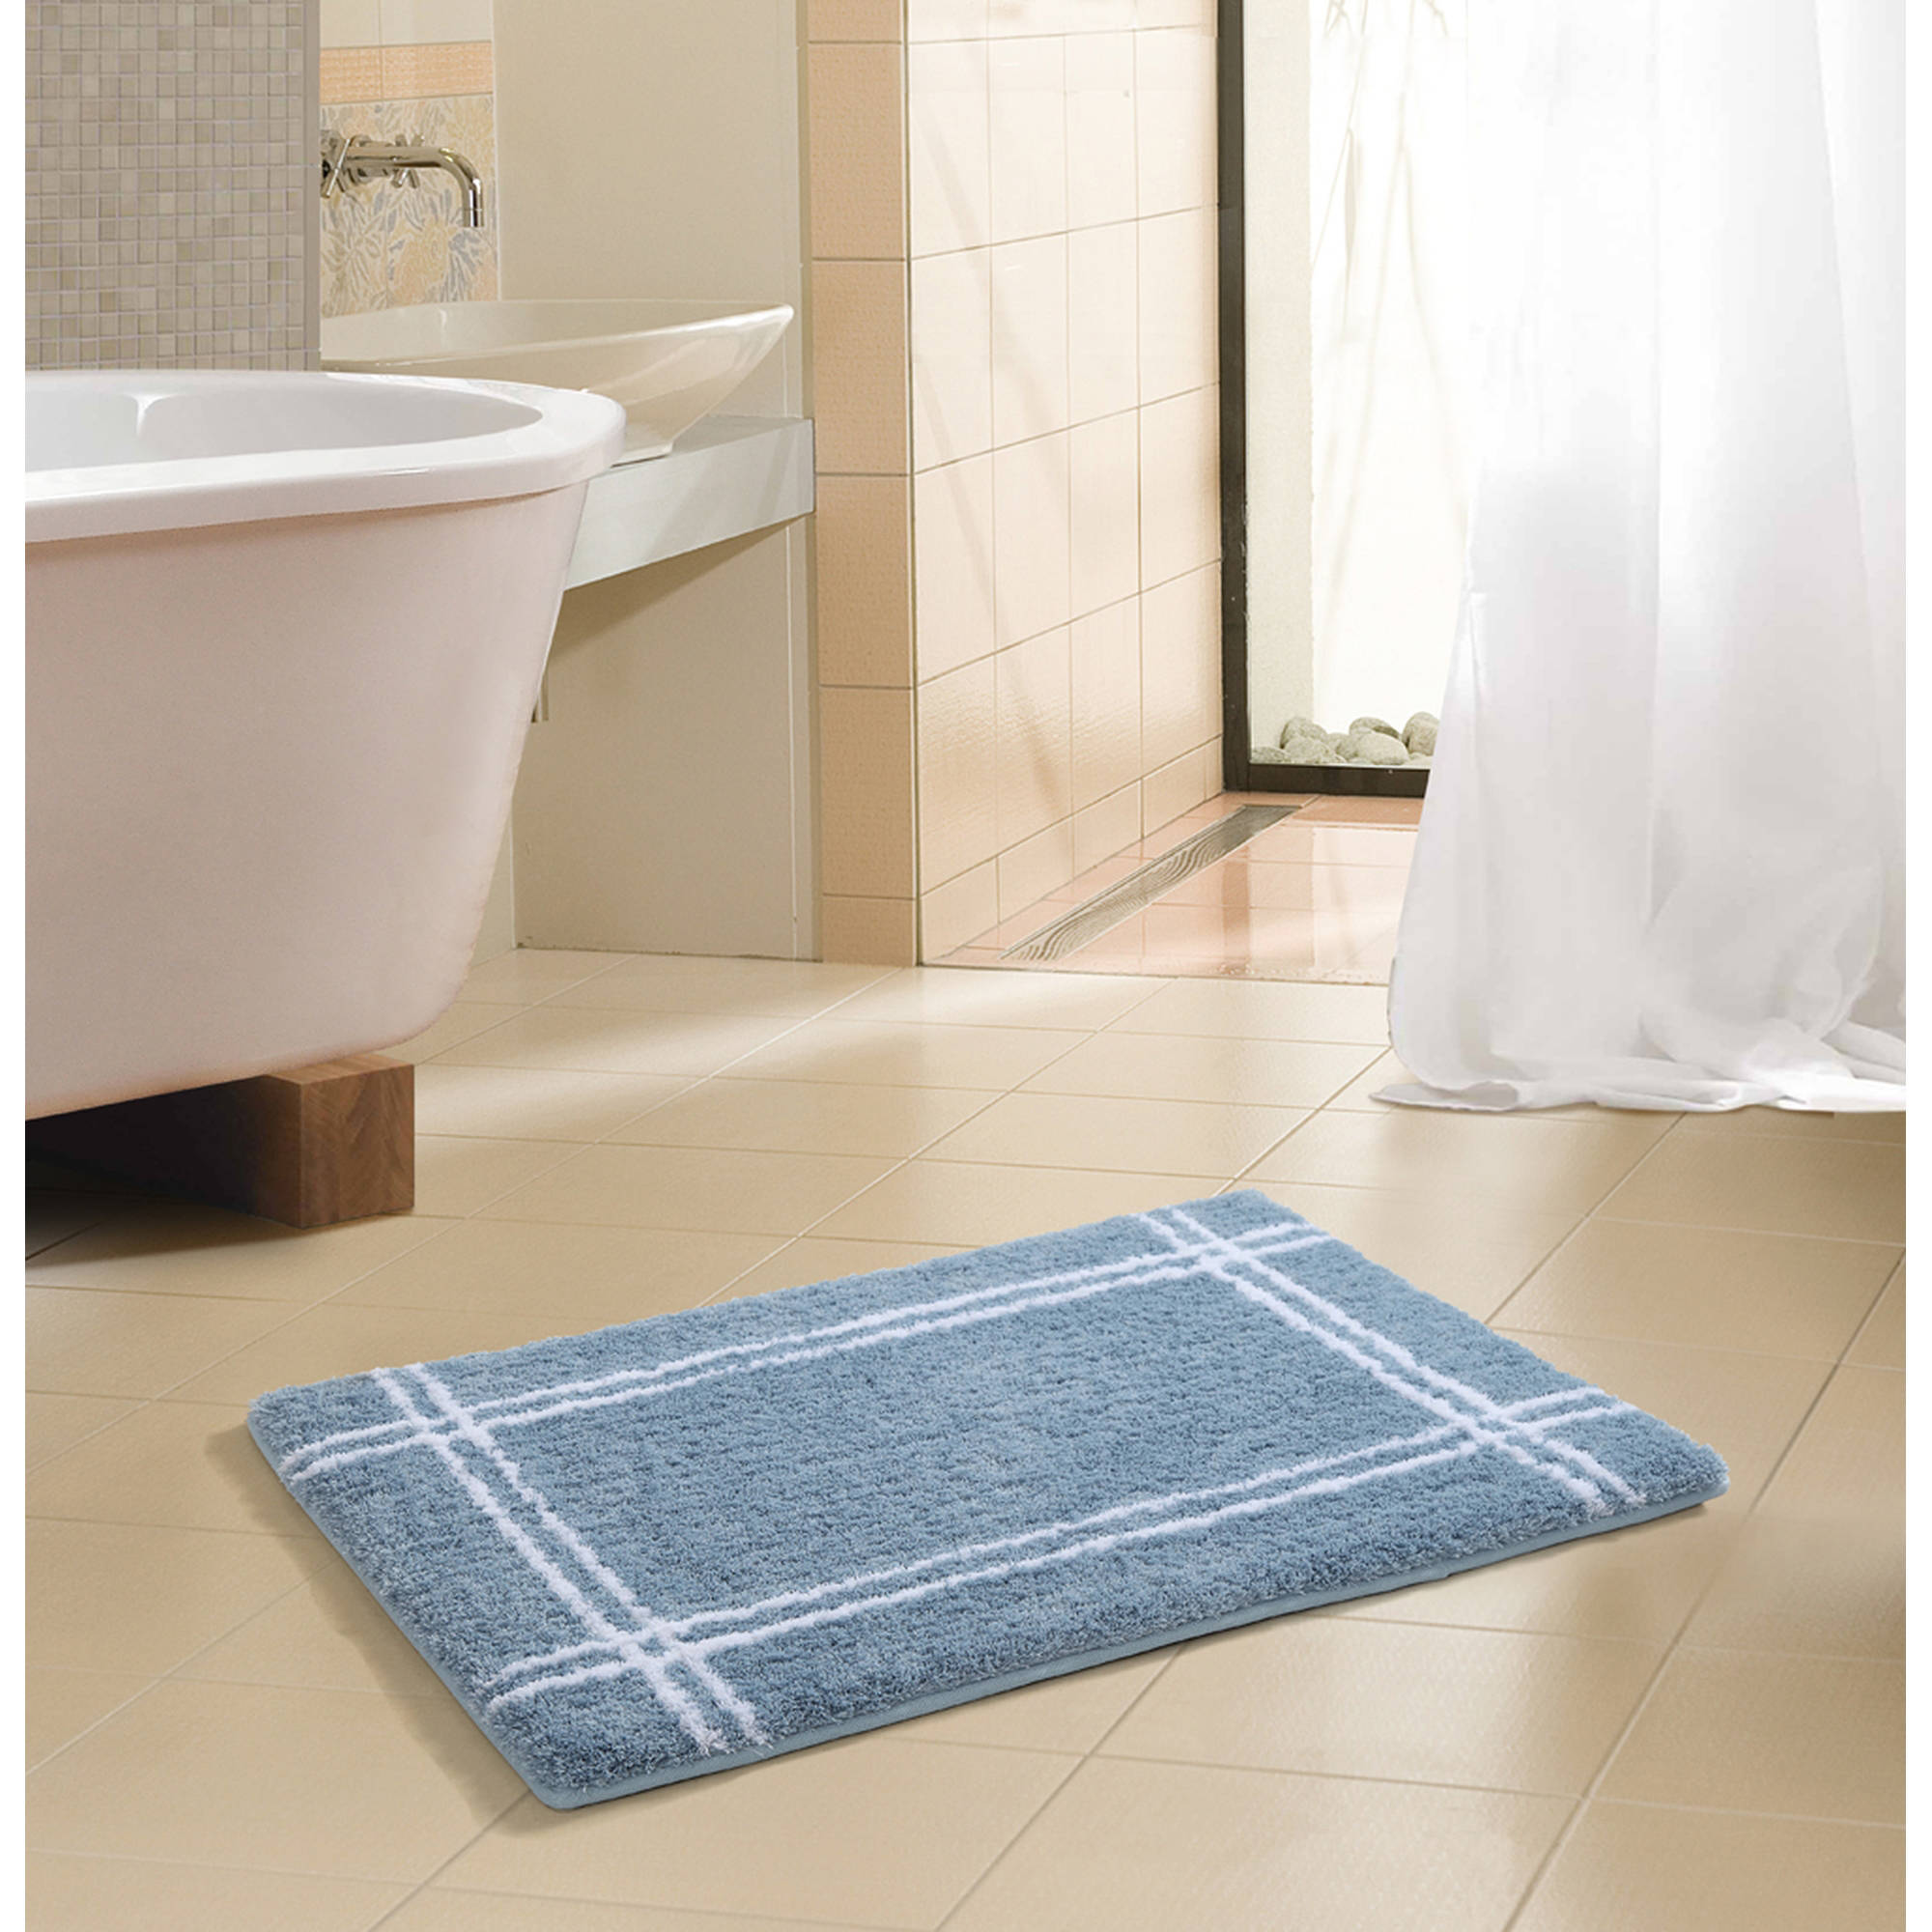 "***DISCONTINUED*** VCNY Home Traverse 18""x28"" Hotel Style Bath Rug"